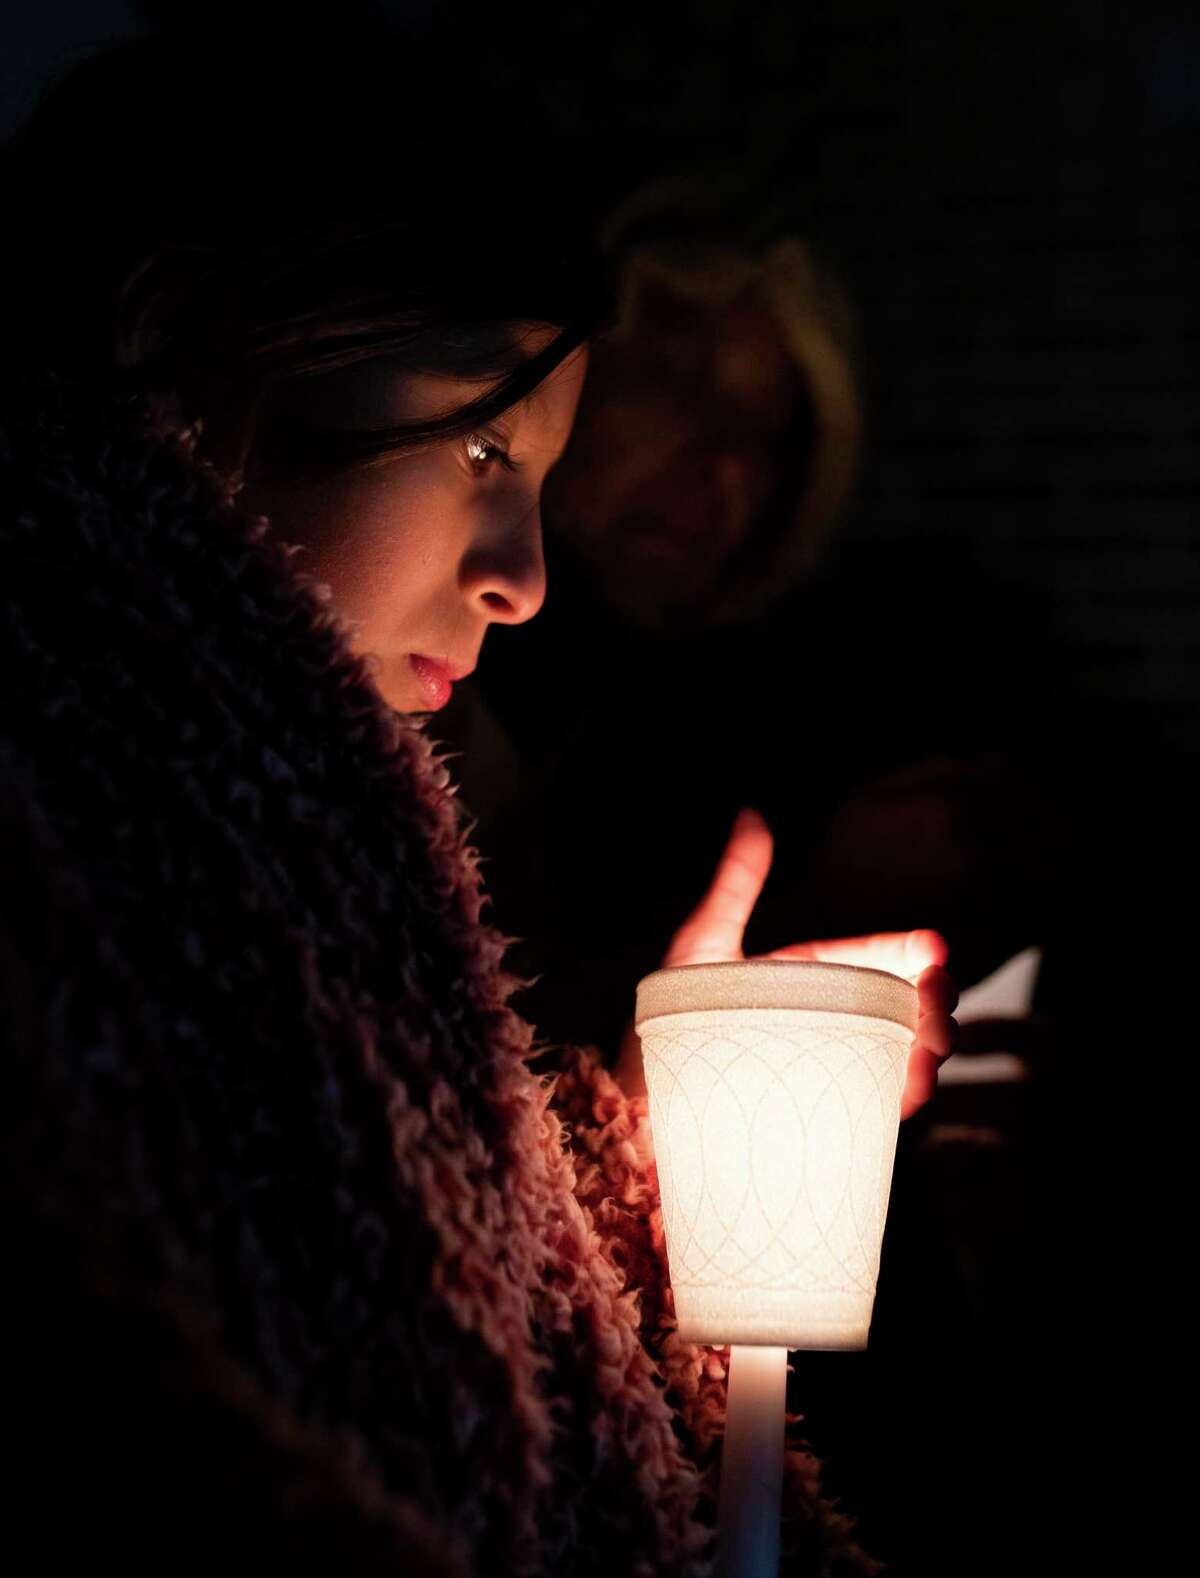 Shael Torres, 11, attends a vigil organized by The Texas Organizing Project at St. Agnes Catholic Church in San Antonio tonight in support DACA recipients and immigrant families on Monday, Nov. 11, 2019. Tomorrow the U.S. Supreme Court will hear arguments on the termination of DACA and will decide whether to uphold or strike down the program.